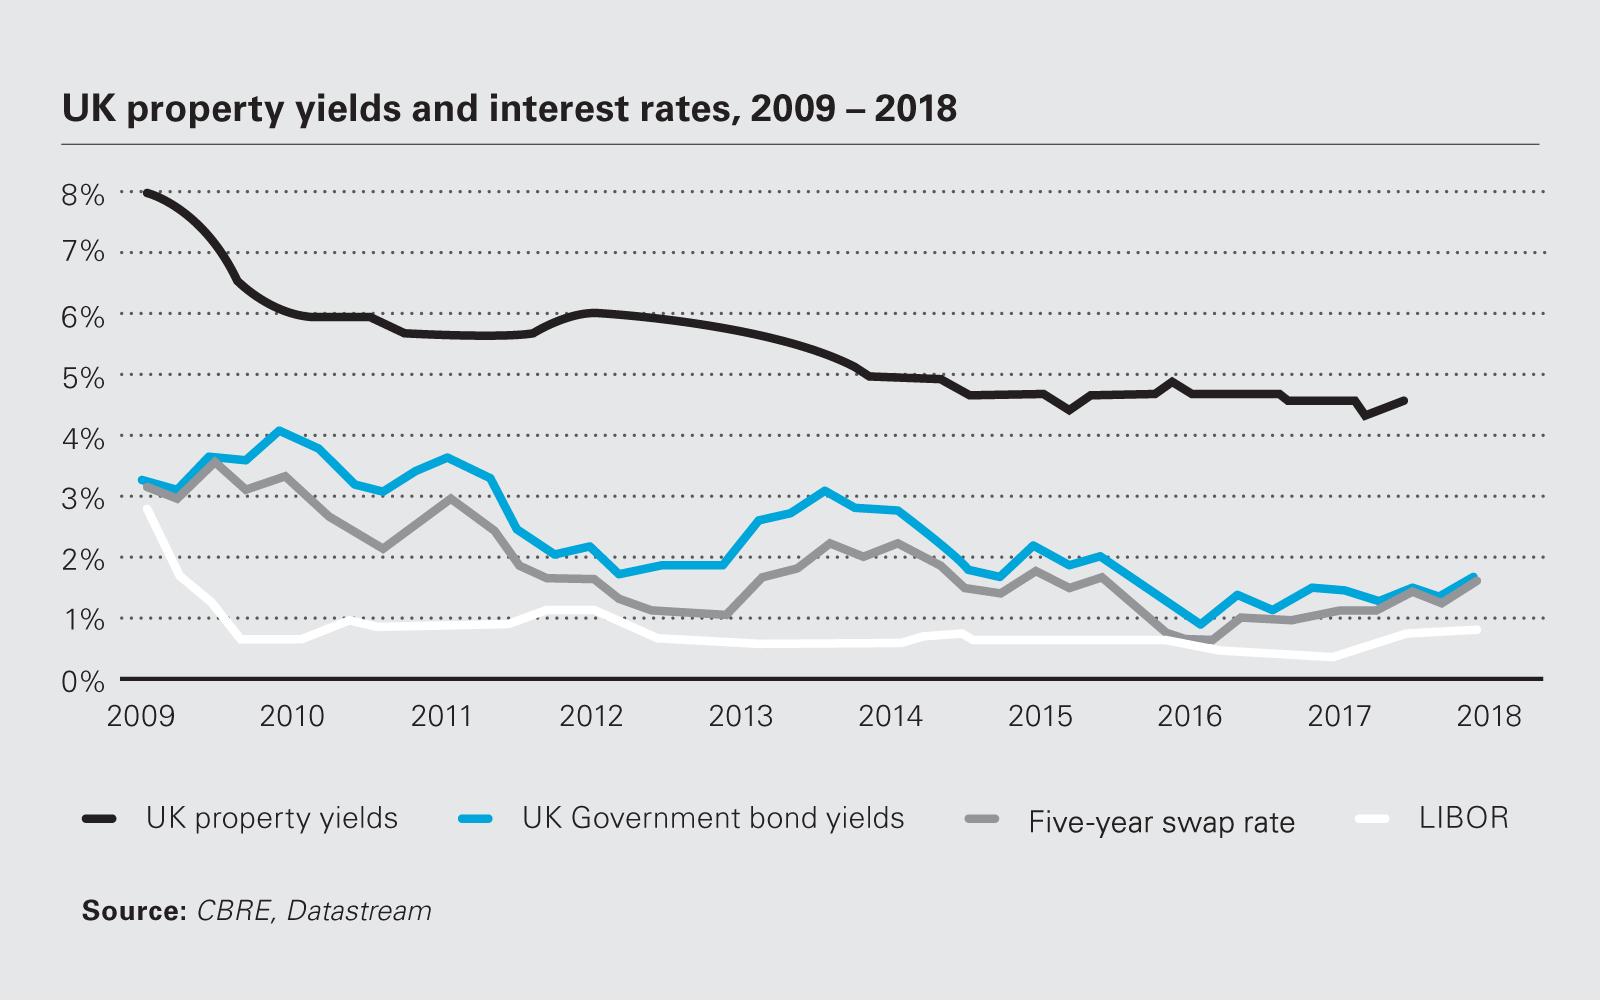 Image chart UK property yields and interest rates, 2009-2018